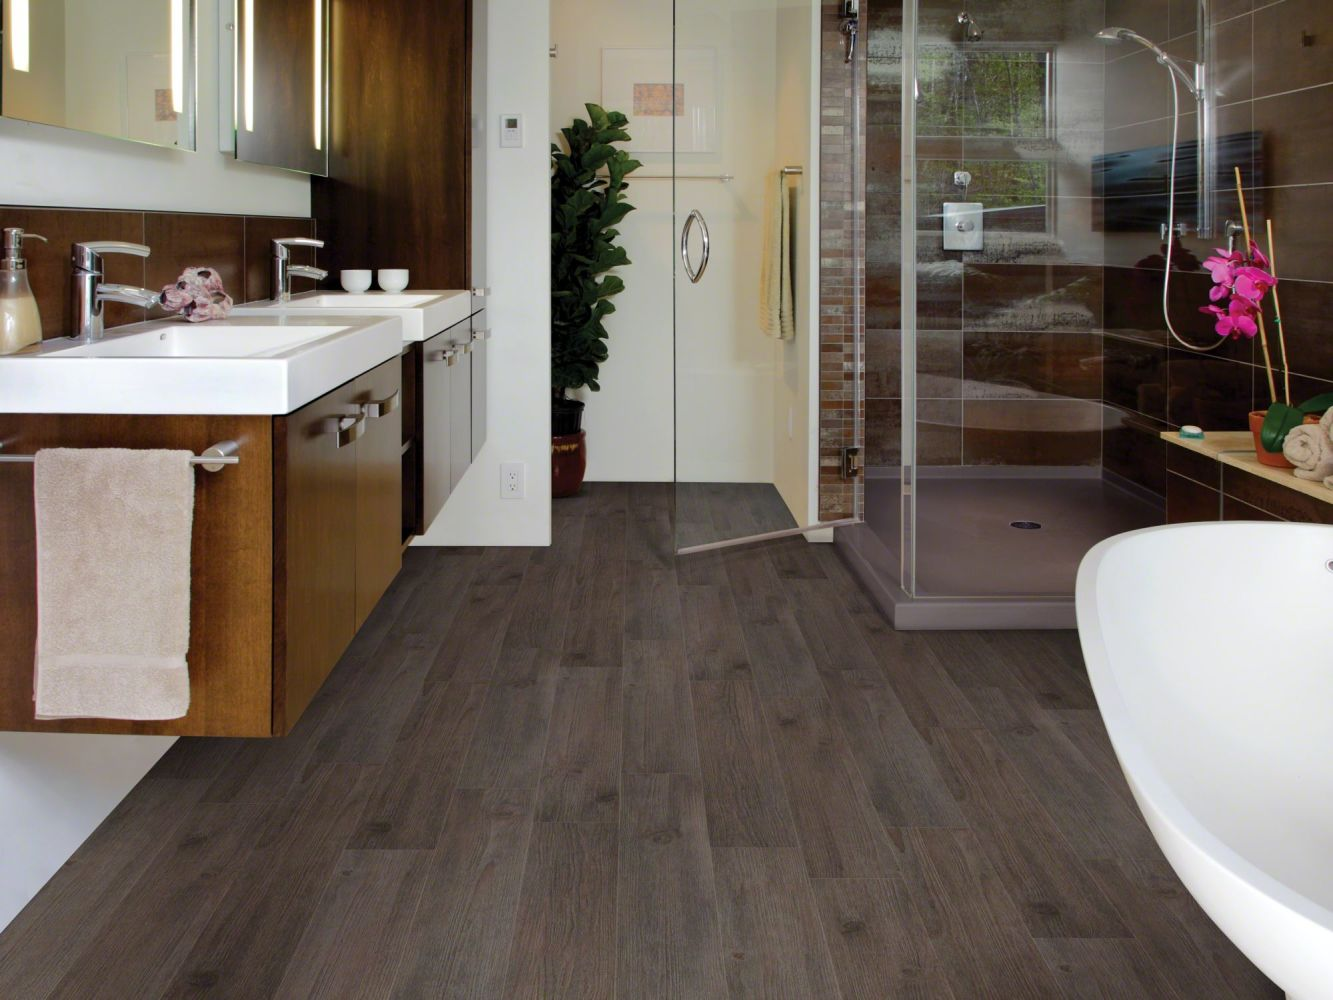 Shaw Floors Resilient Property Solutions Modernality 12plank Skyline 00759_VPS42